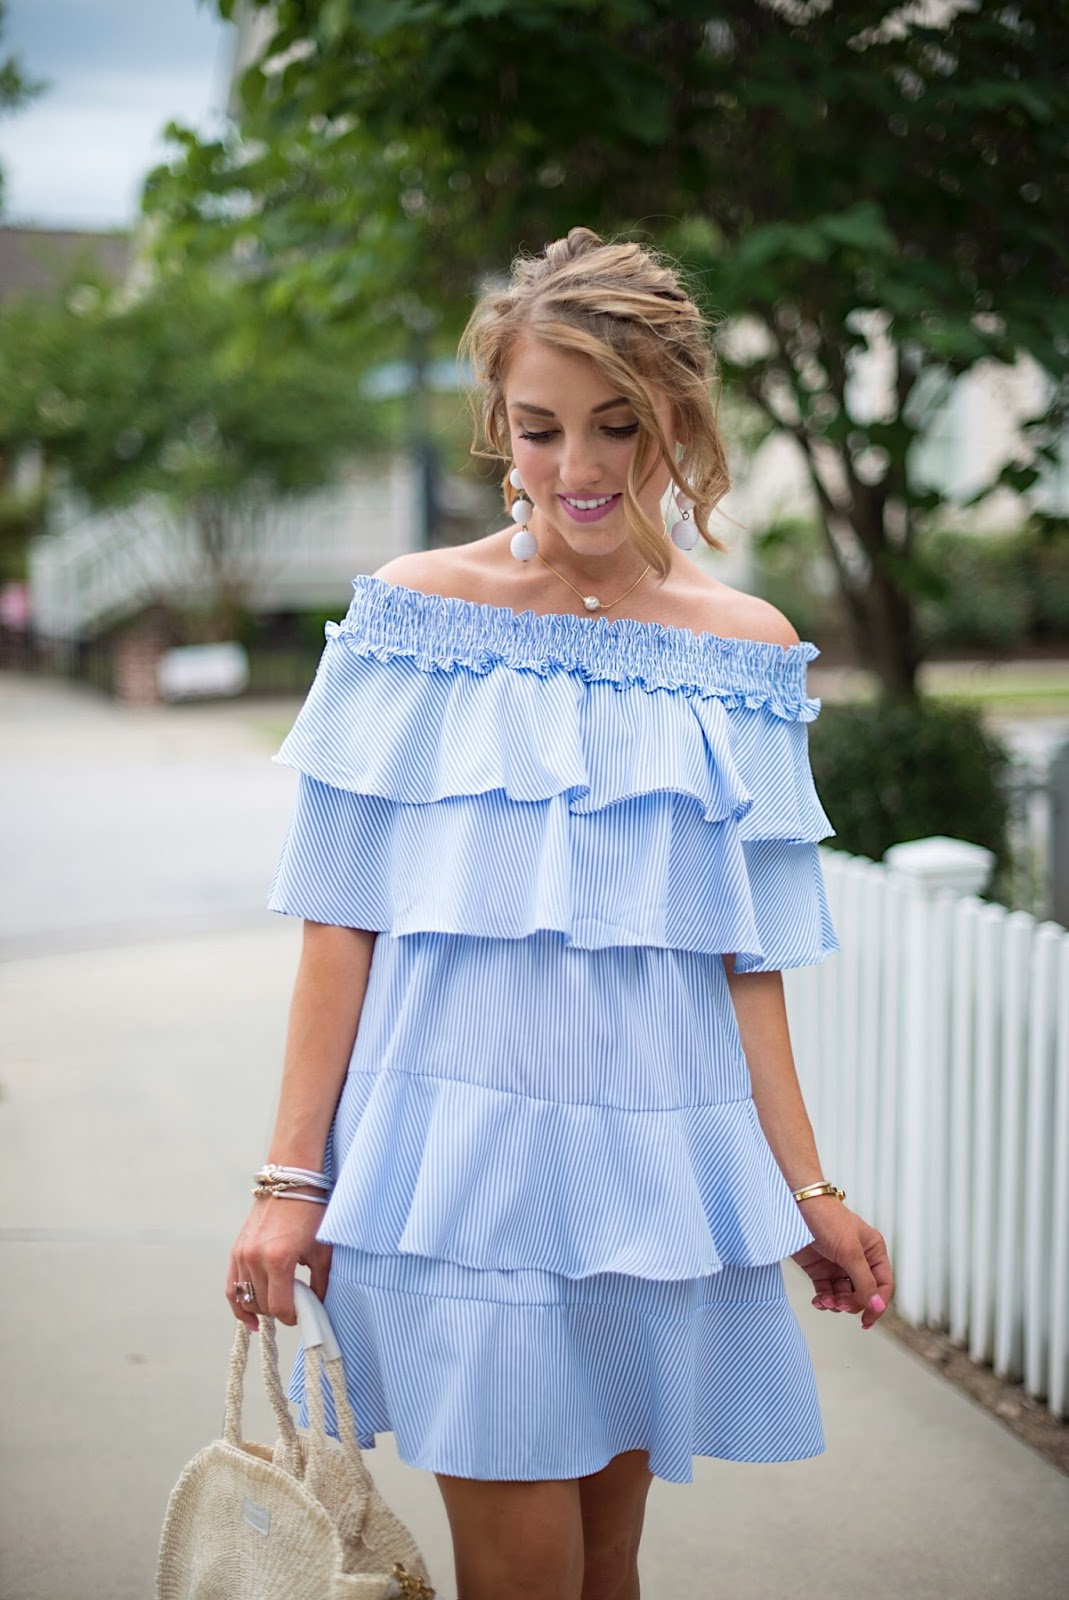 Ruffle OTS Dress - Click through to see more on Something Delightful Blog!